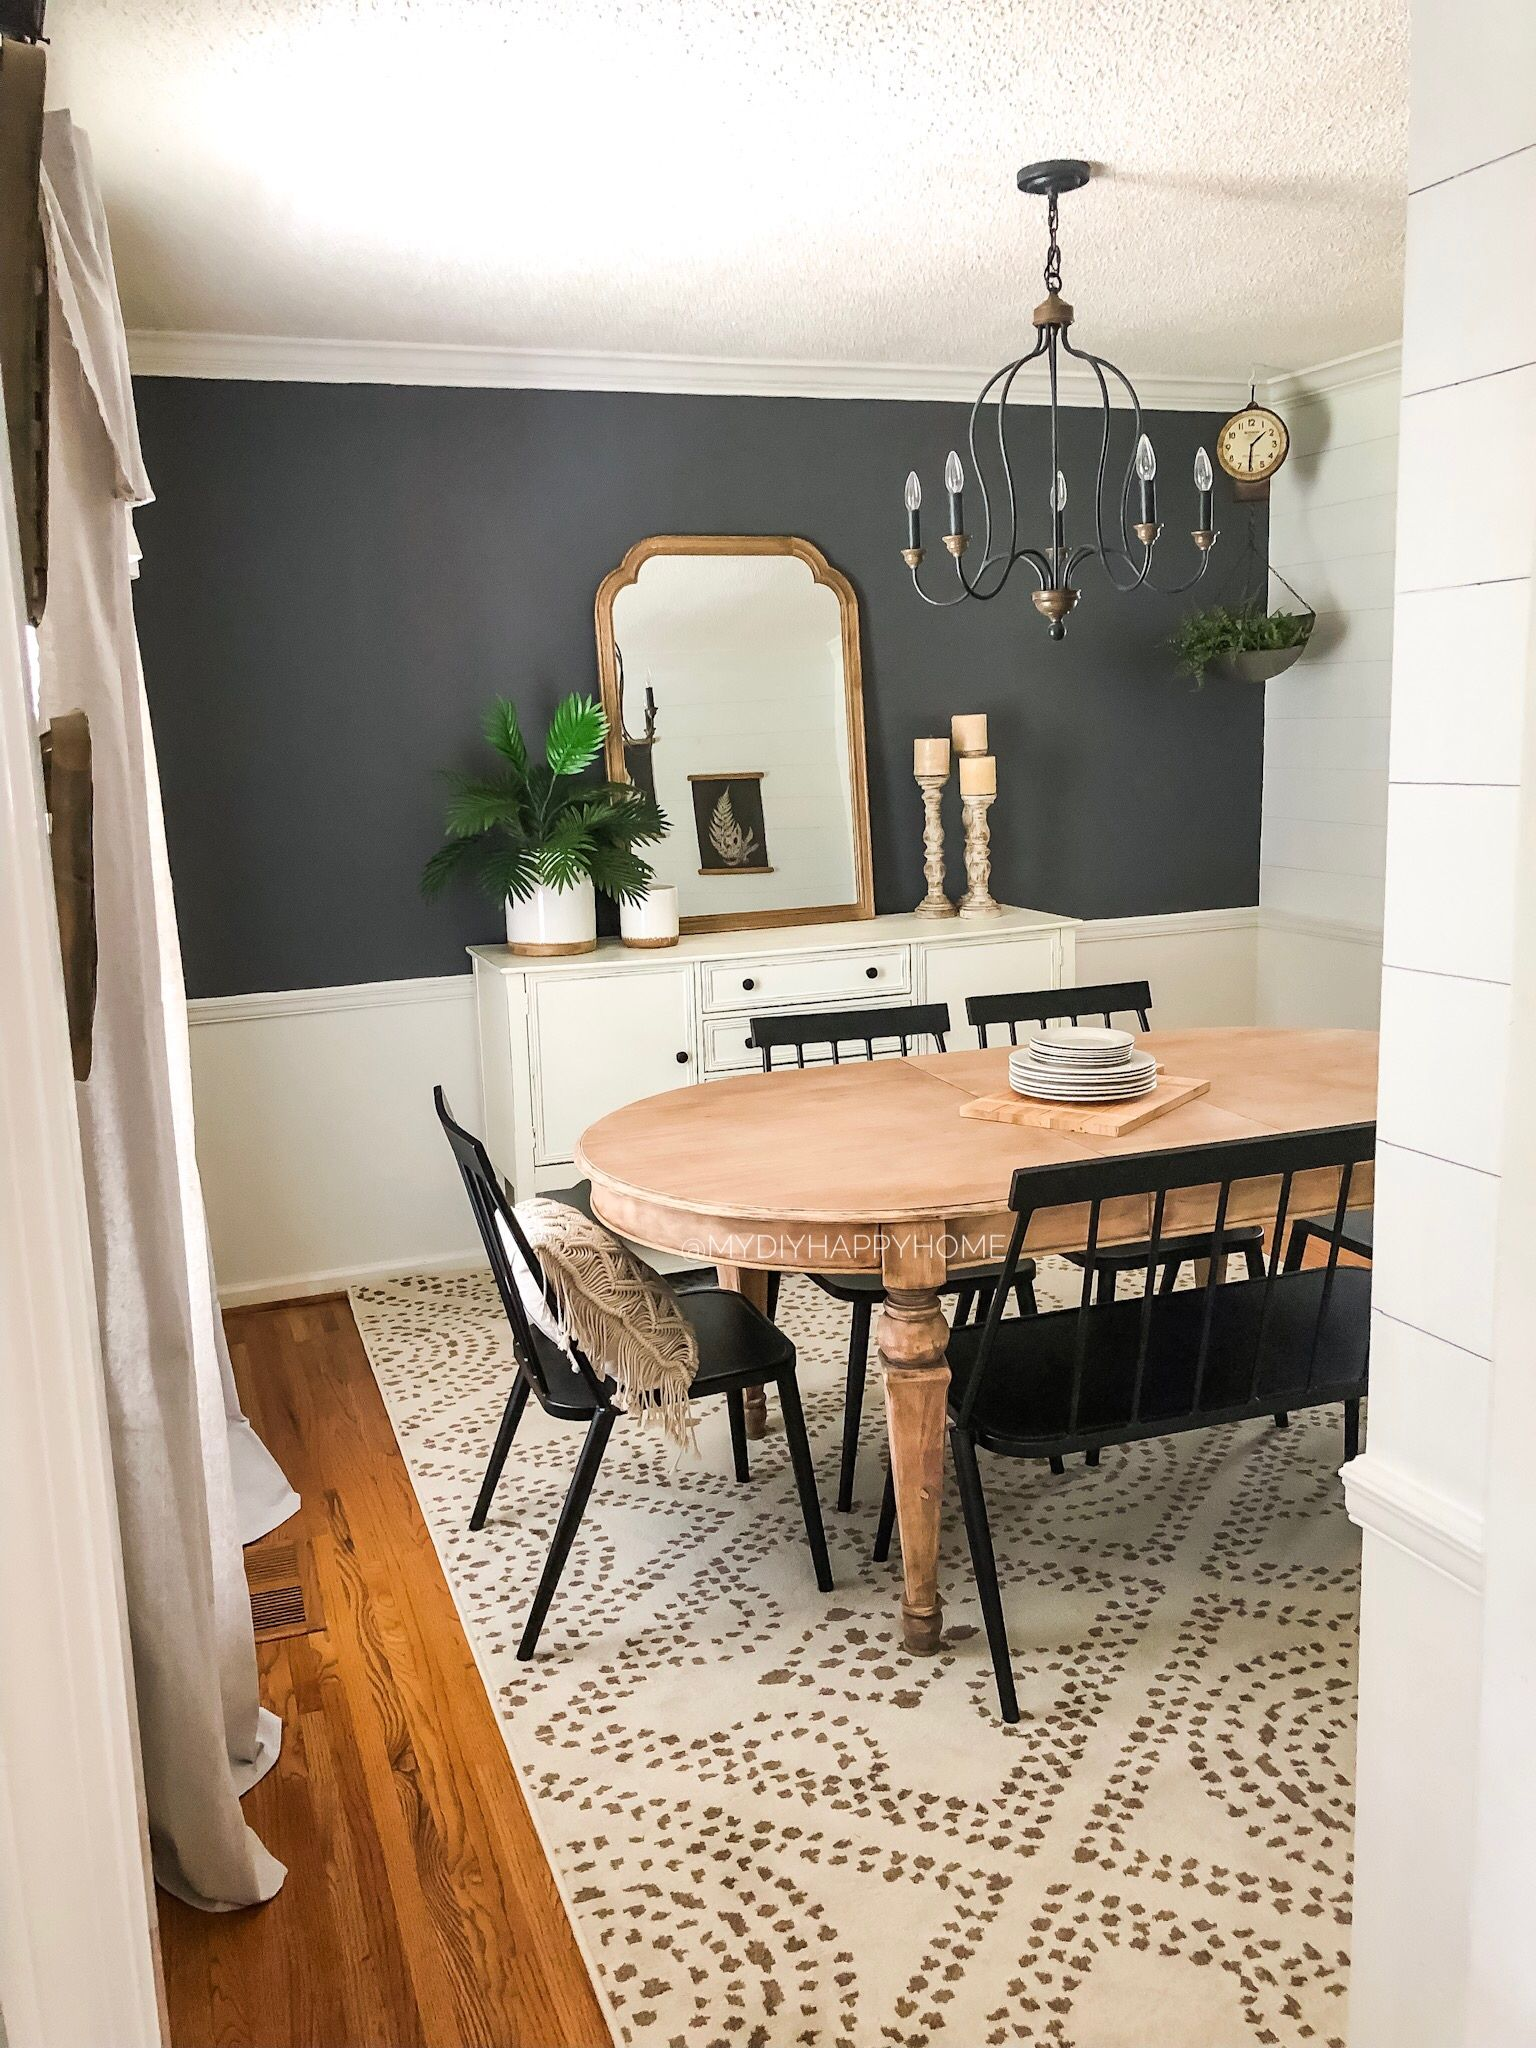 Dining room refresh on a budget | Dining room remodel ...